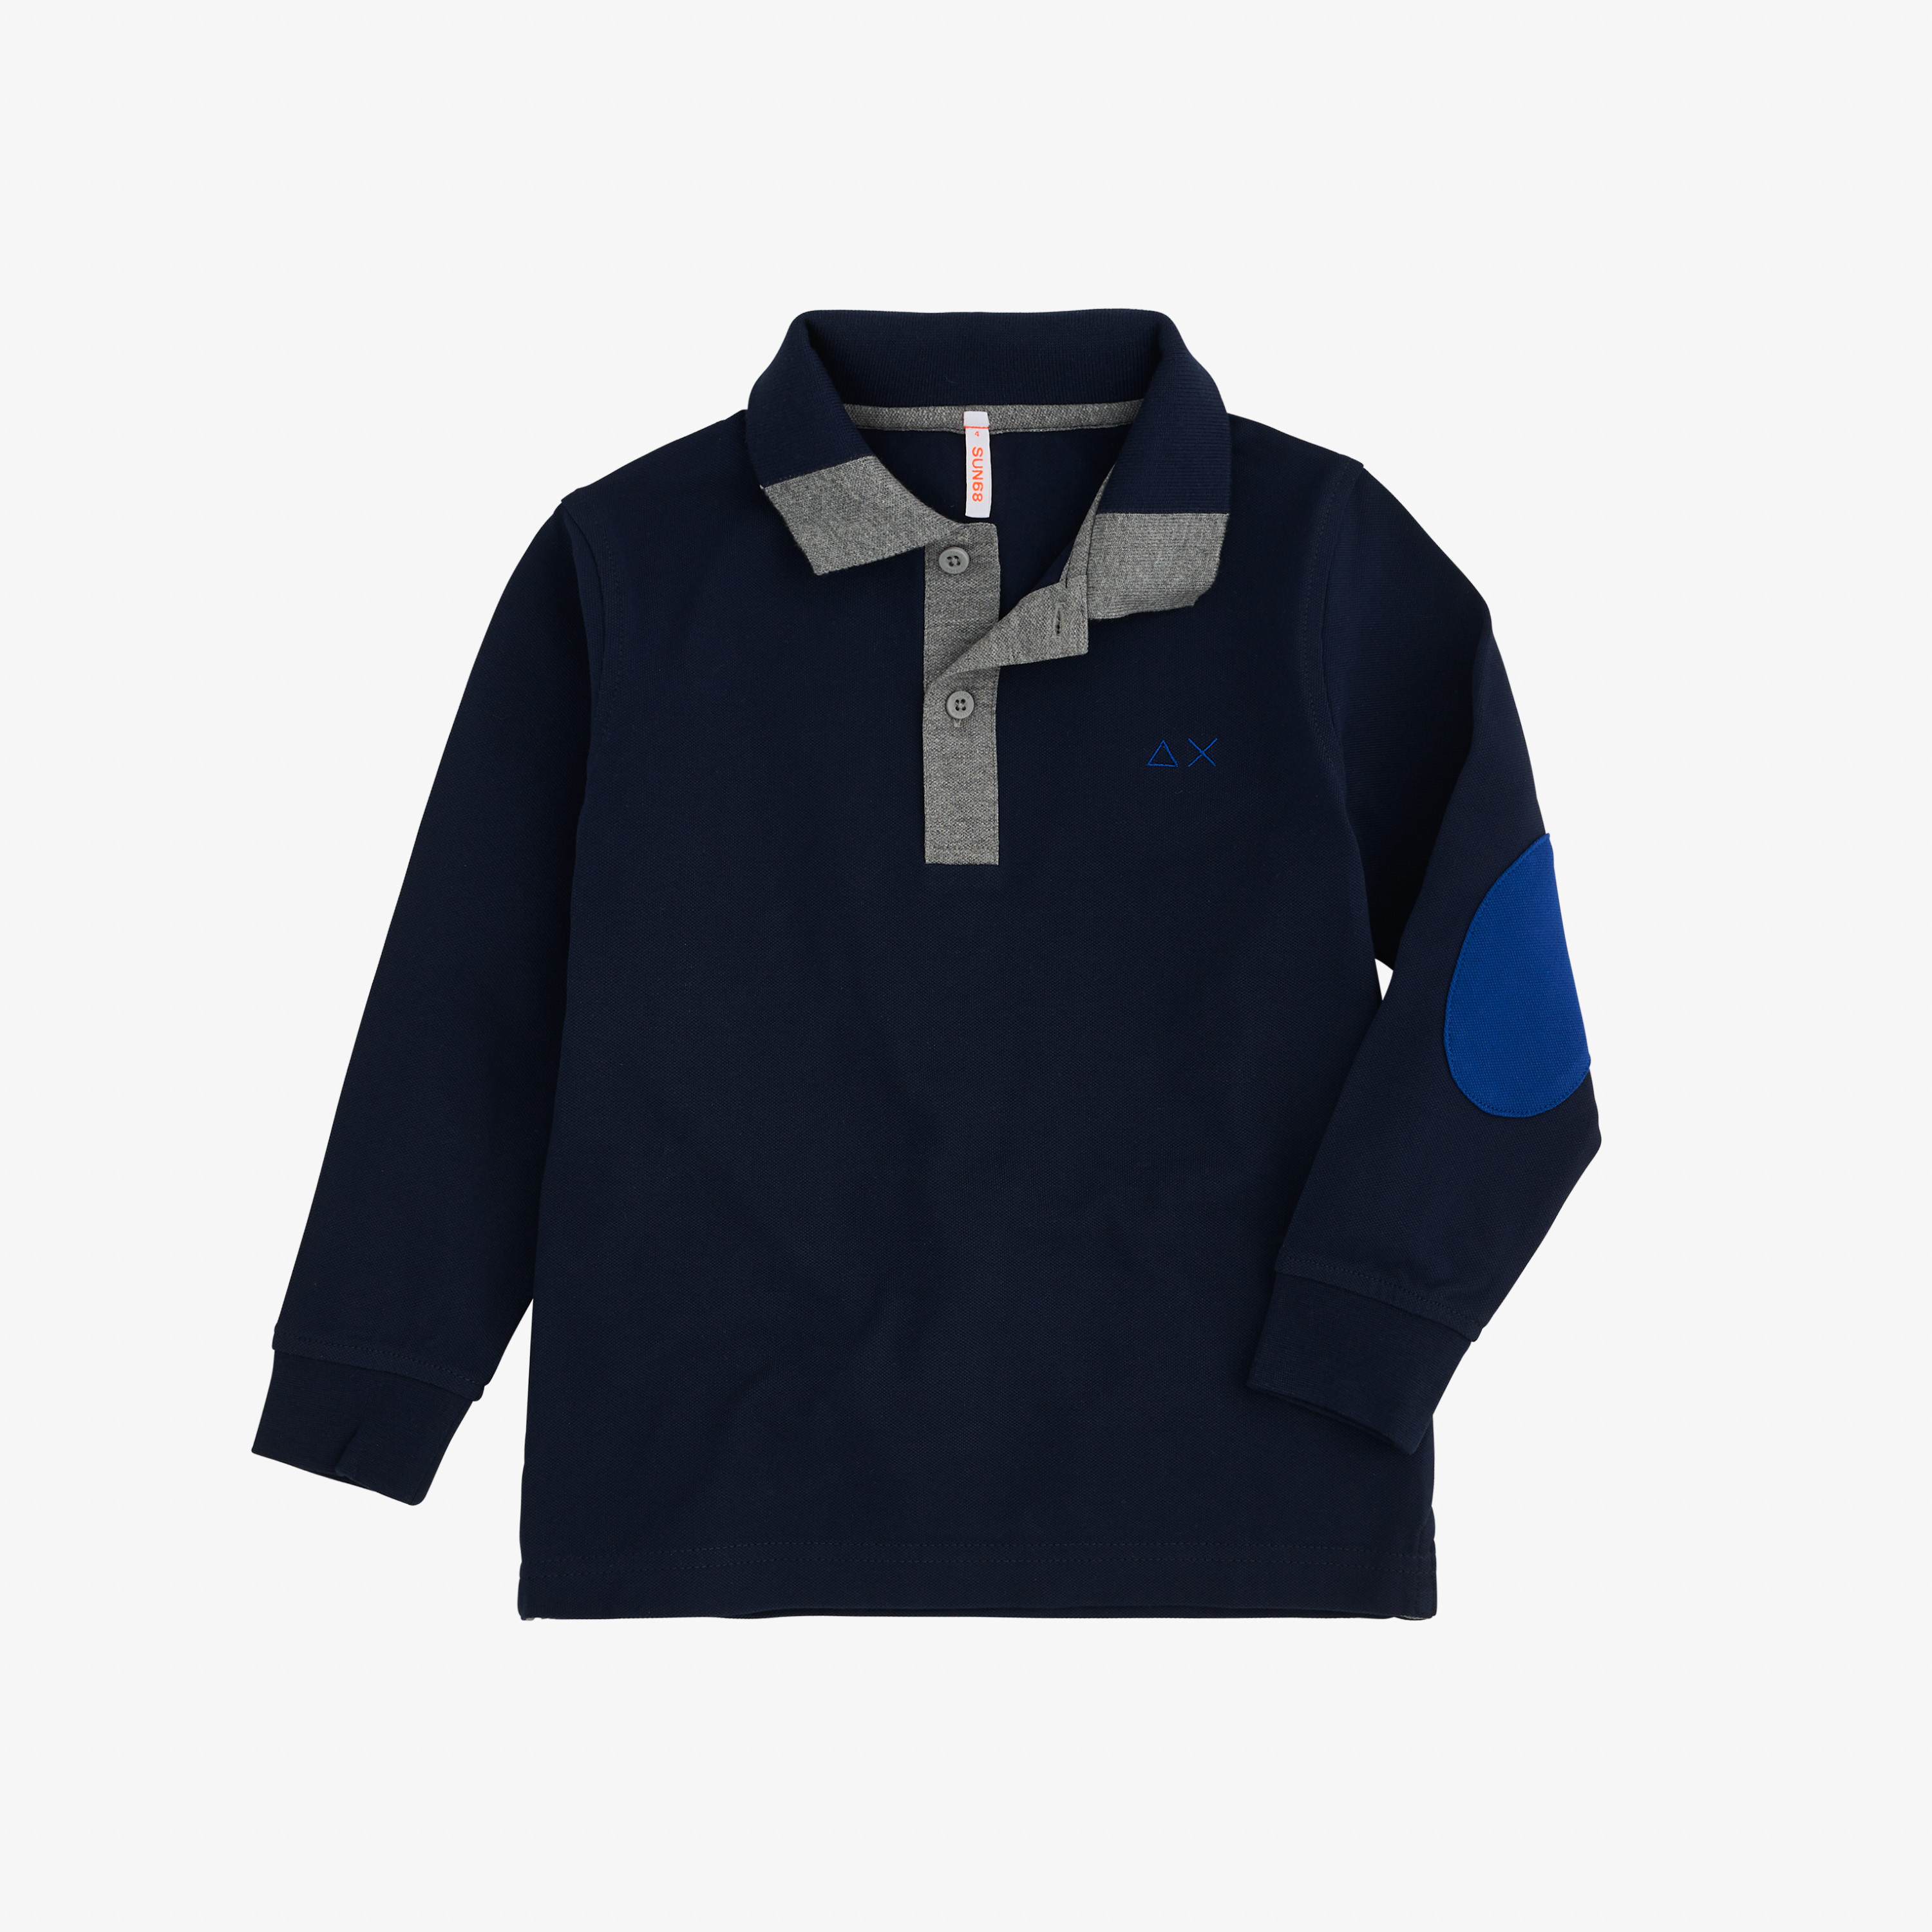 BOY'S POLO 3 CONTRAST ELBOW L/S NAVY BLUE